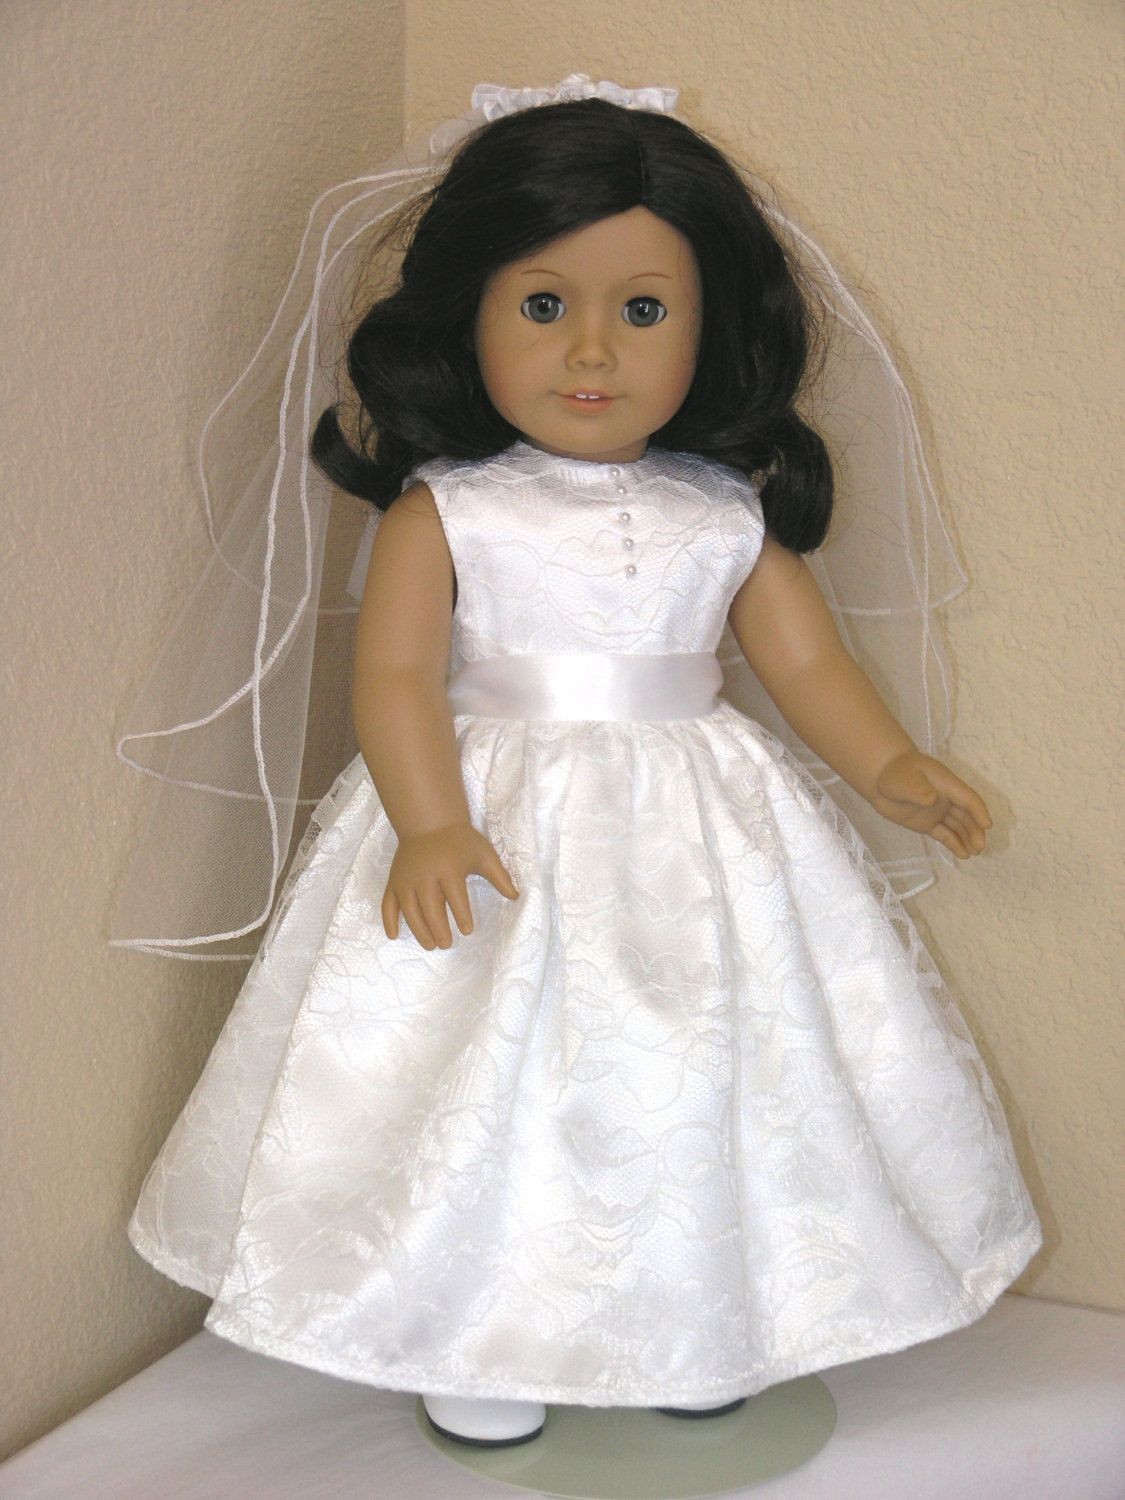 First Communion 18 Inch American Girl Doll Dress Pantalettes Veil